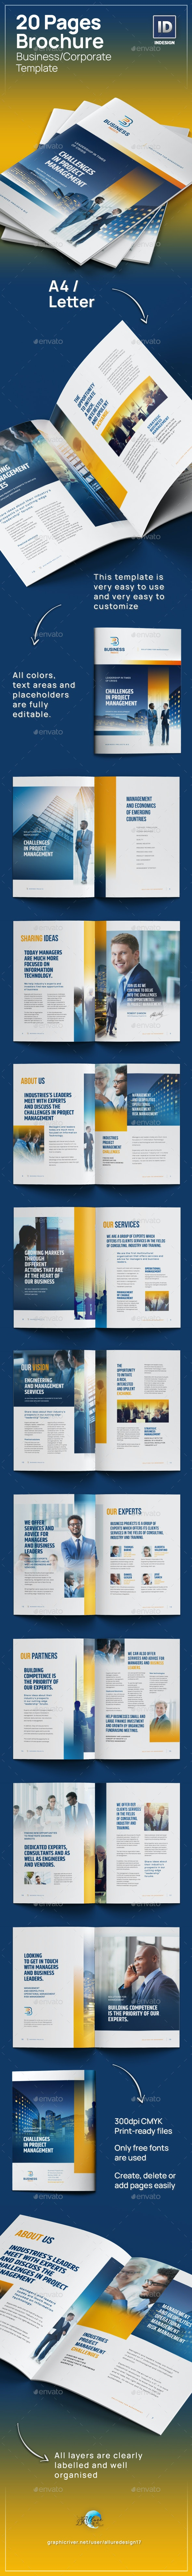 Brochure Business Corporate V2 - Corporate Brochures